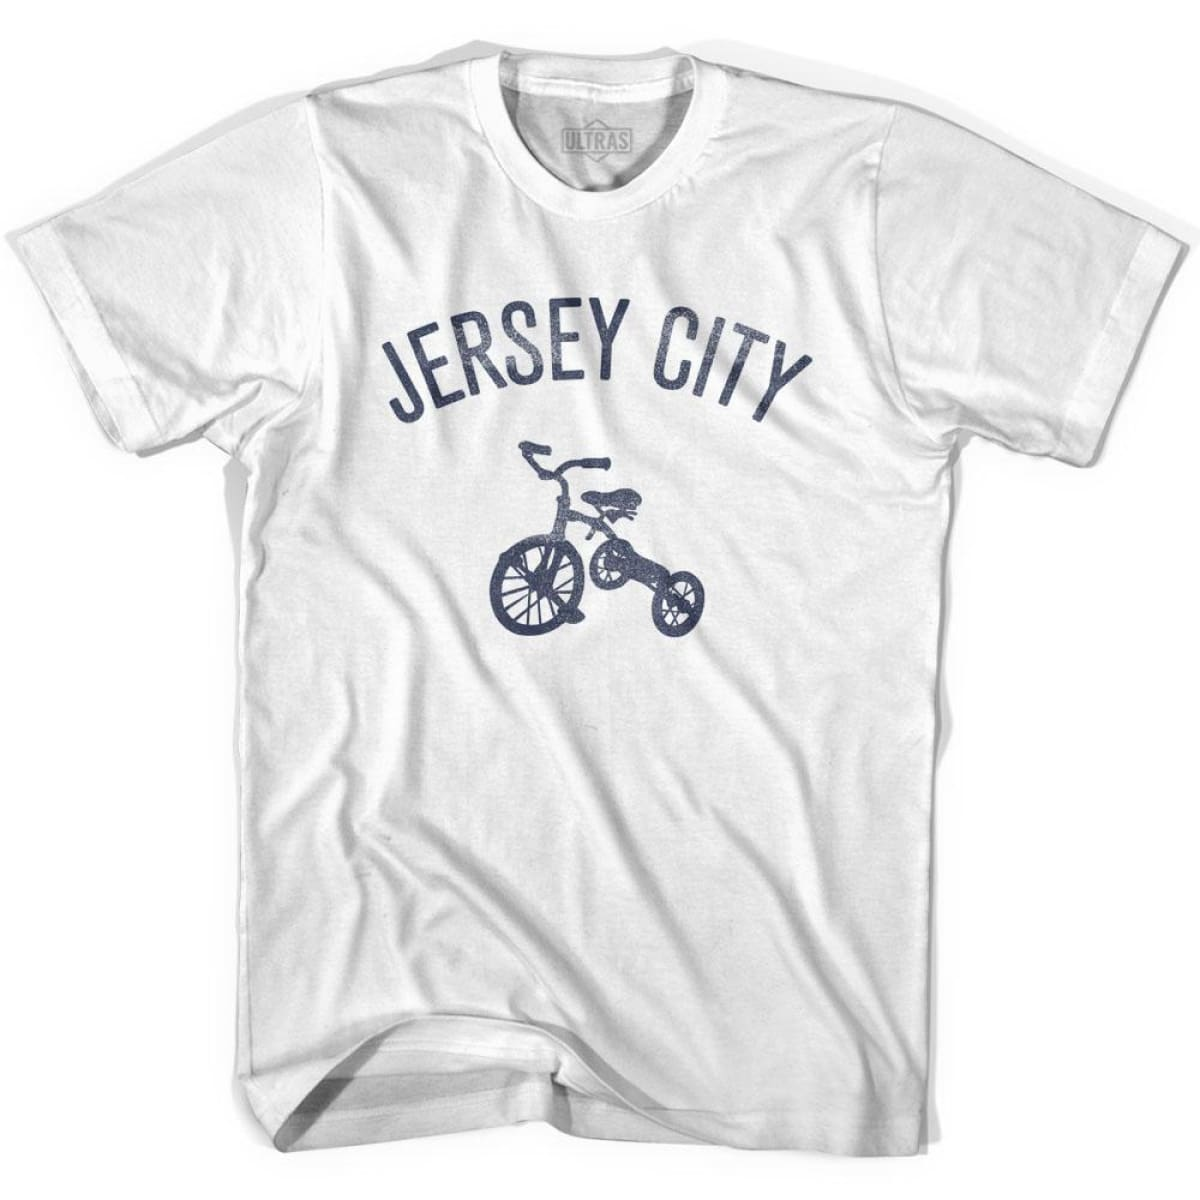 Jersey City Tricycle Youth Cotton T-shirt - Tricycle City